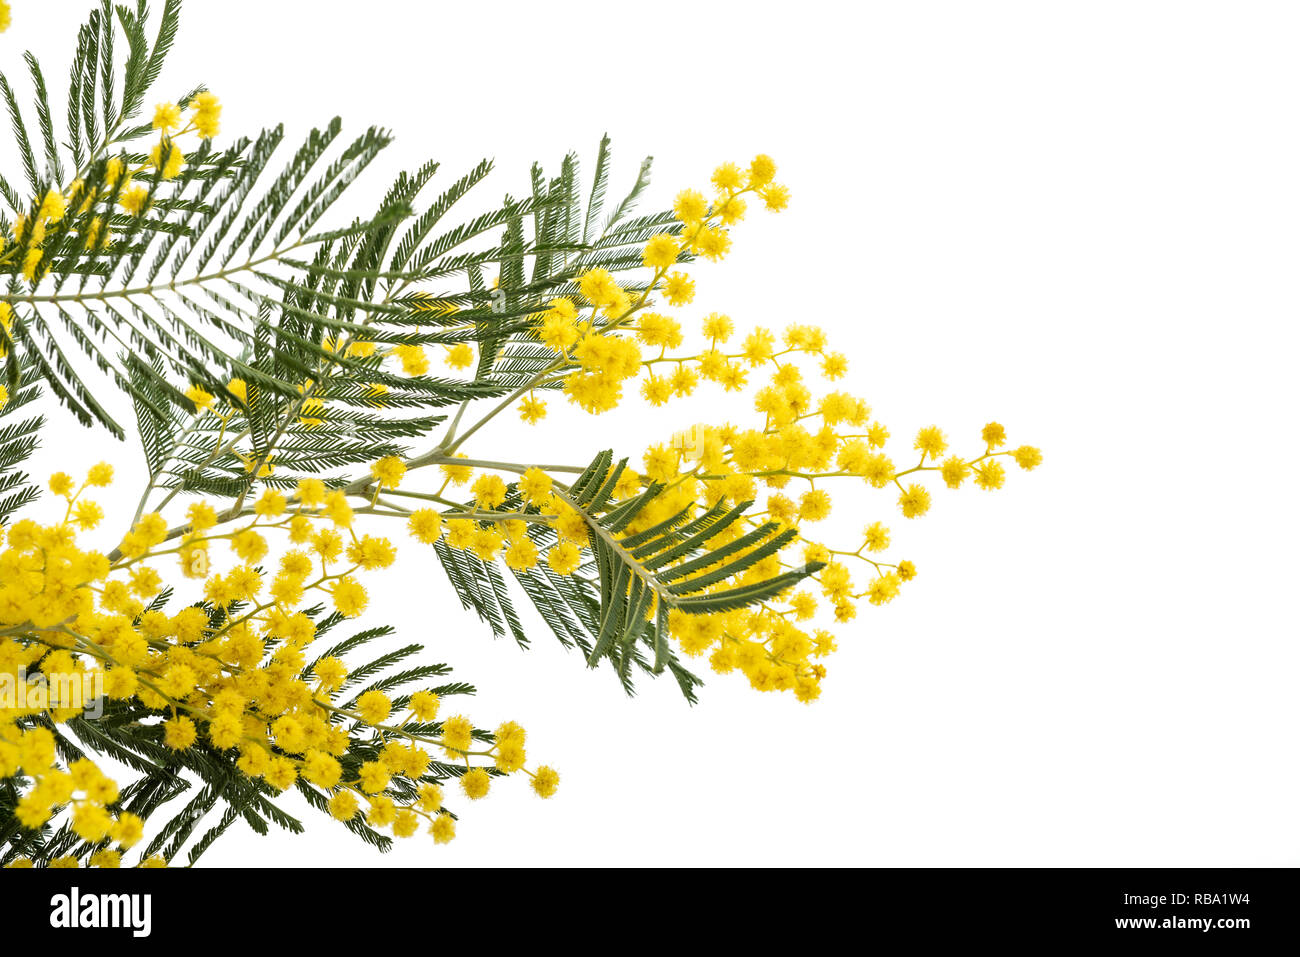 Mimosa (silver wattle) branch isolated on white background. - Stock Image